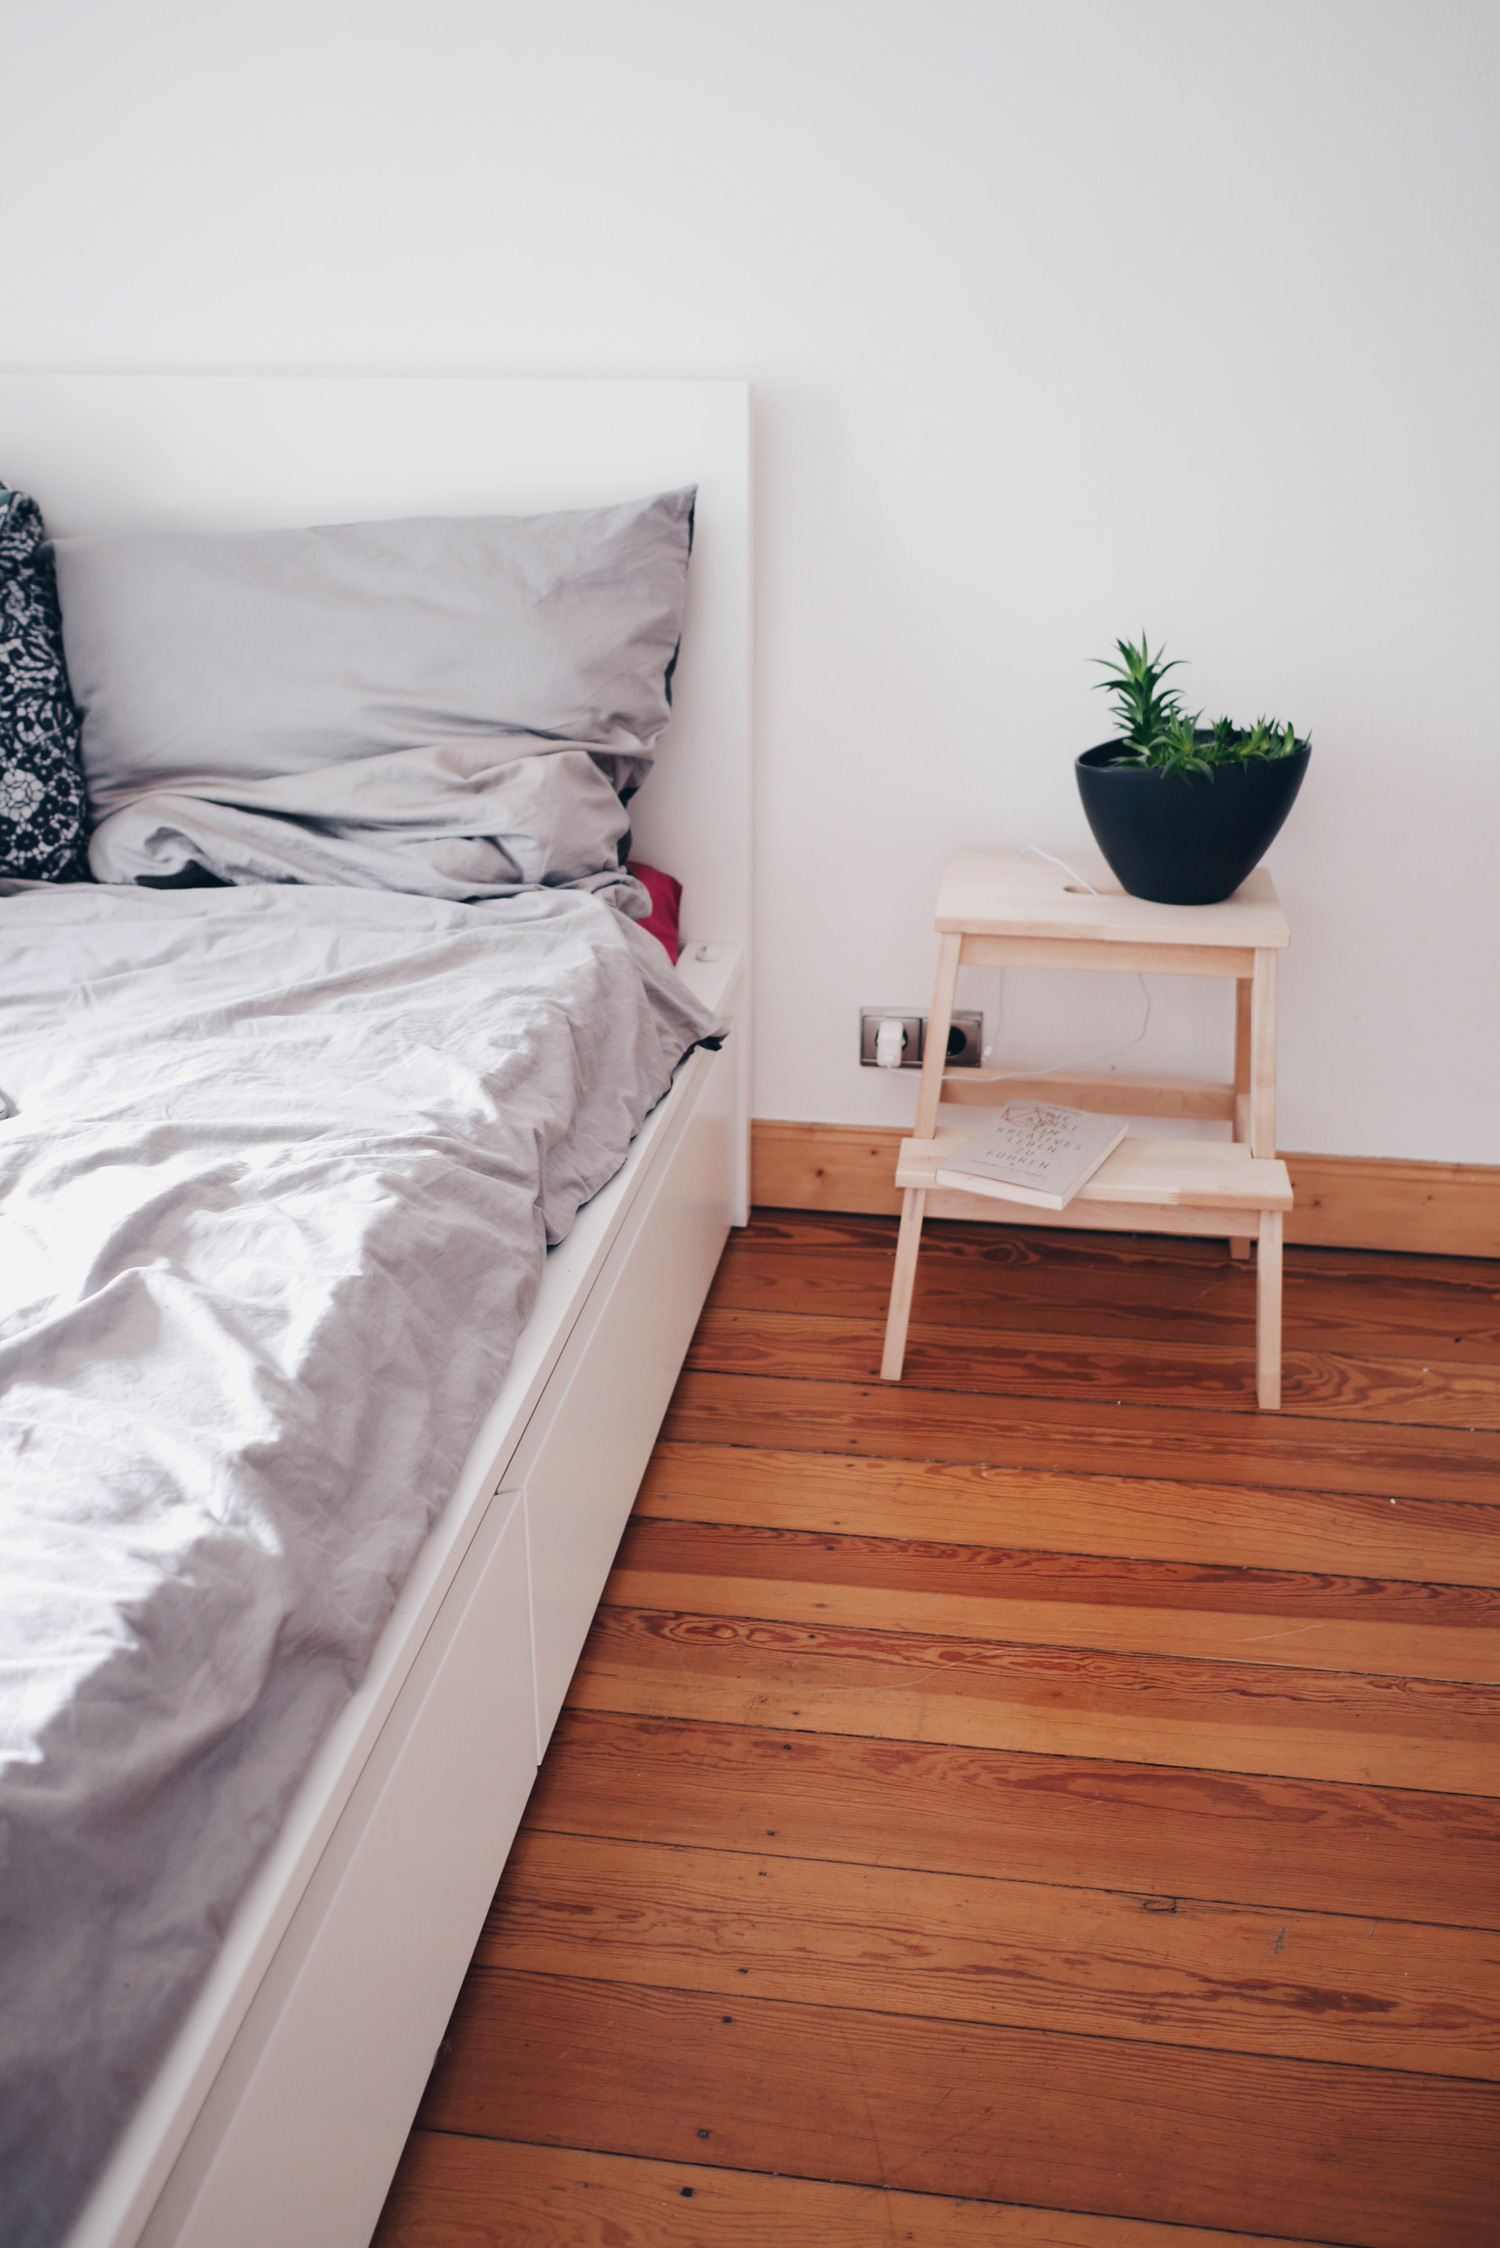 ROOM UPDATE: Minimalistisches WG Zimmer | A HUNGRY MIND